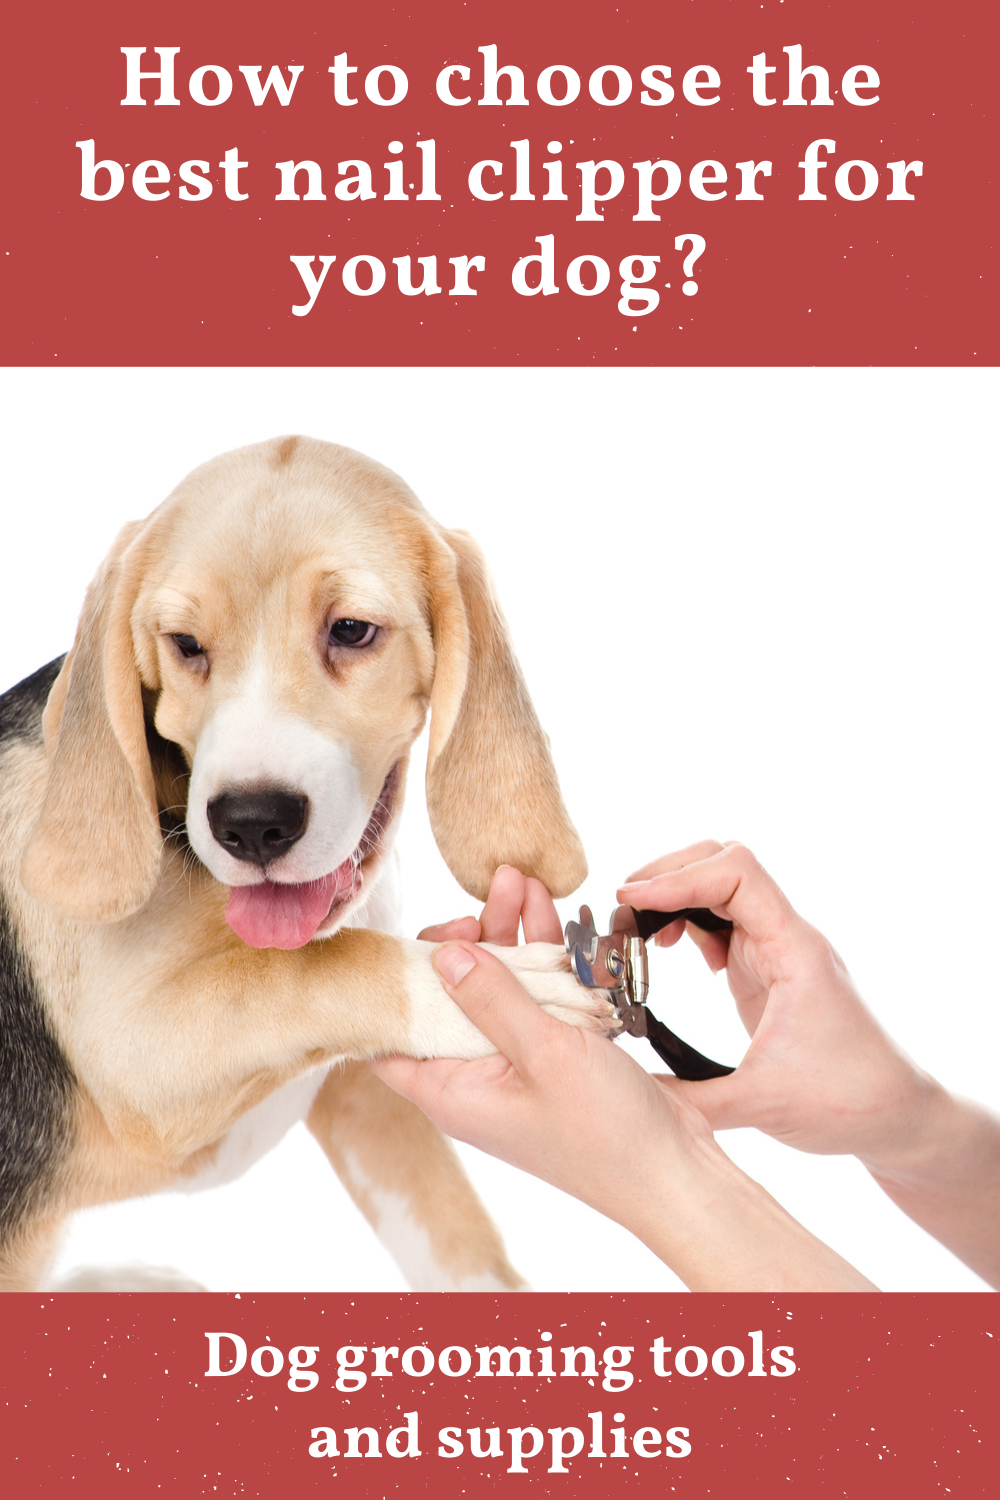 How To Choose The Best Nail Clipper For Your Dog In 2020 Dog Nails Dog Grooming Tips Trimming Dog Nails